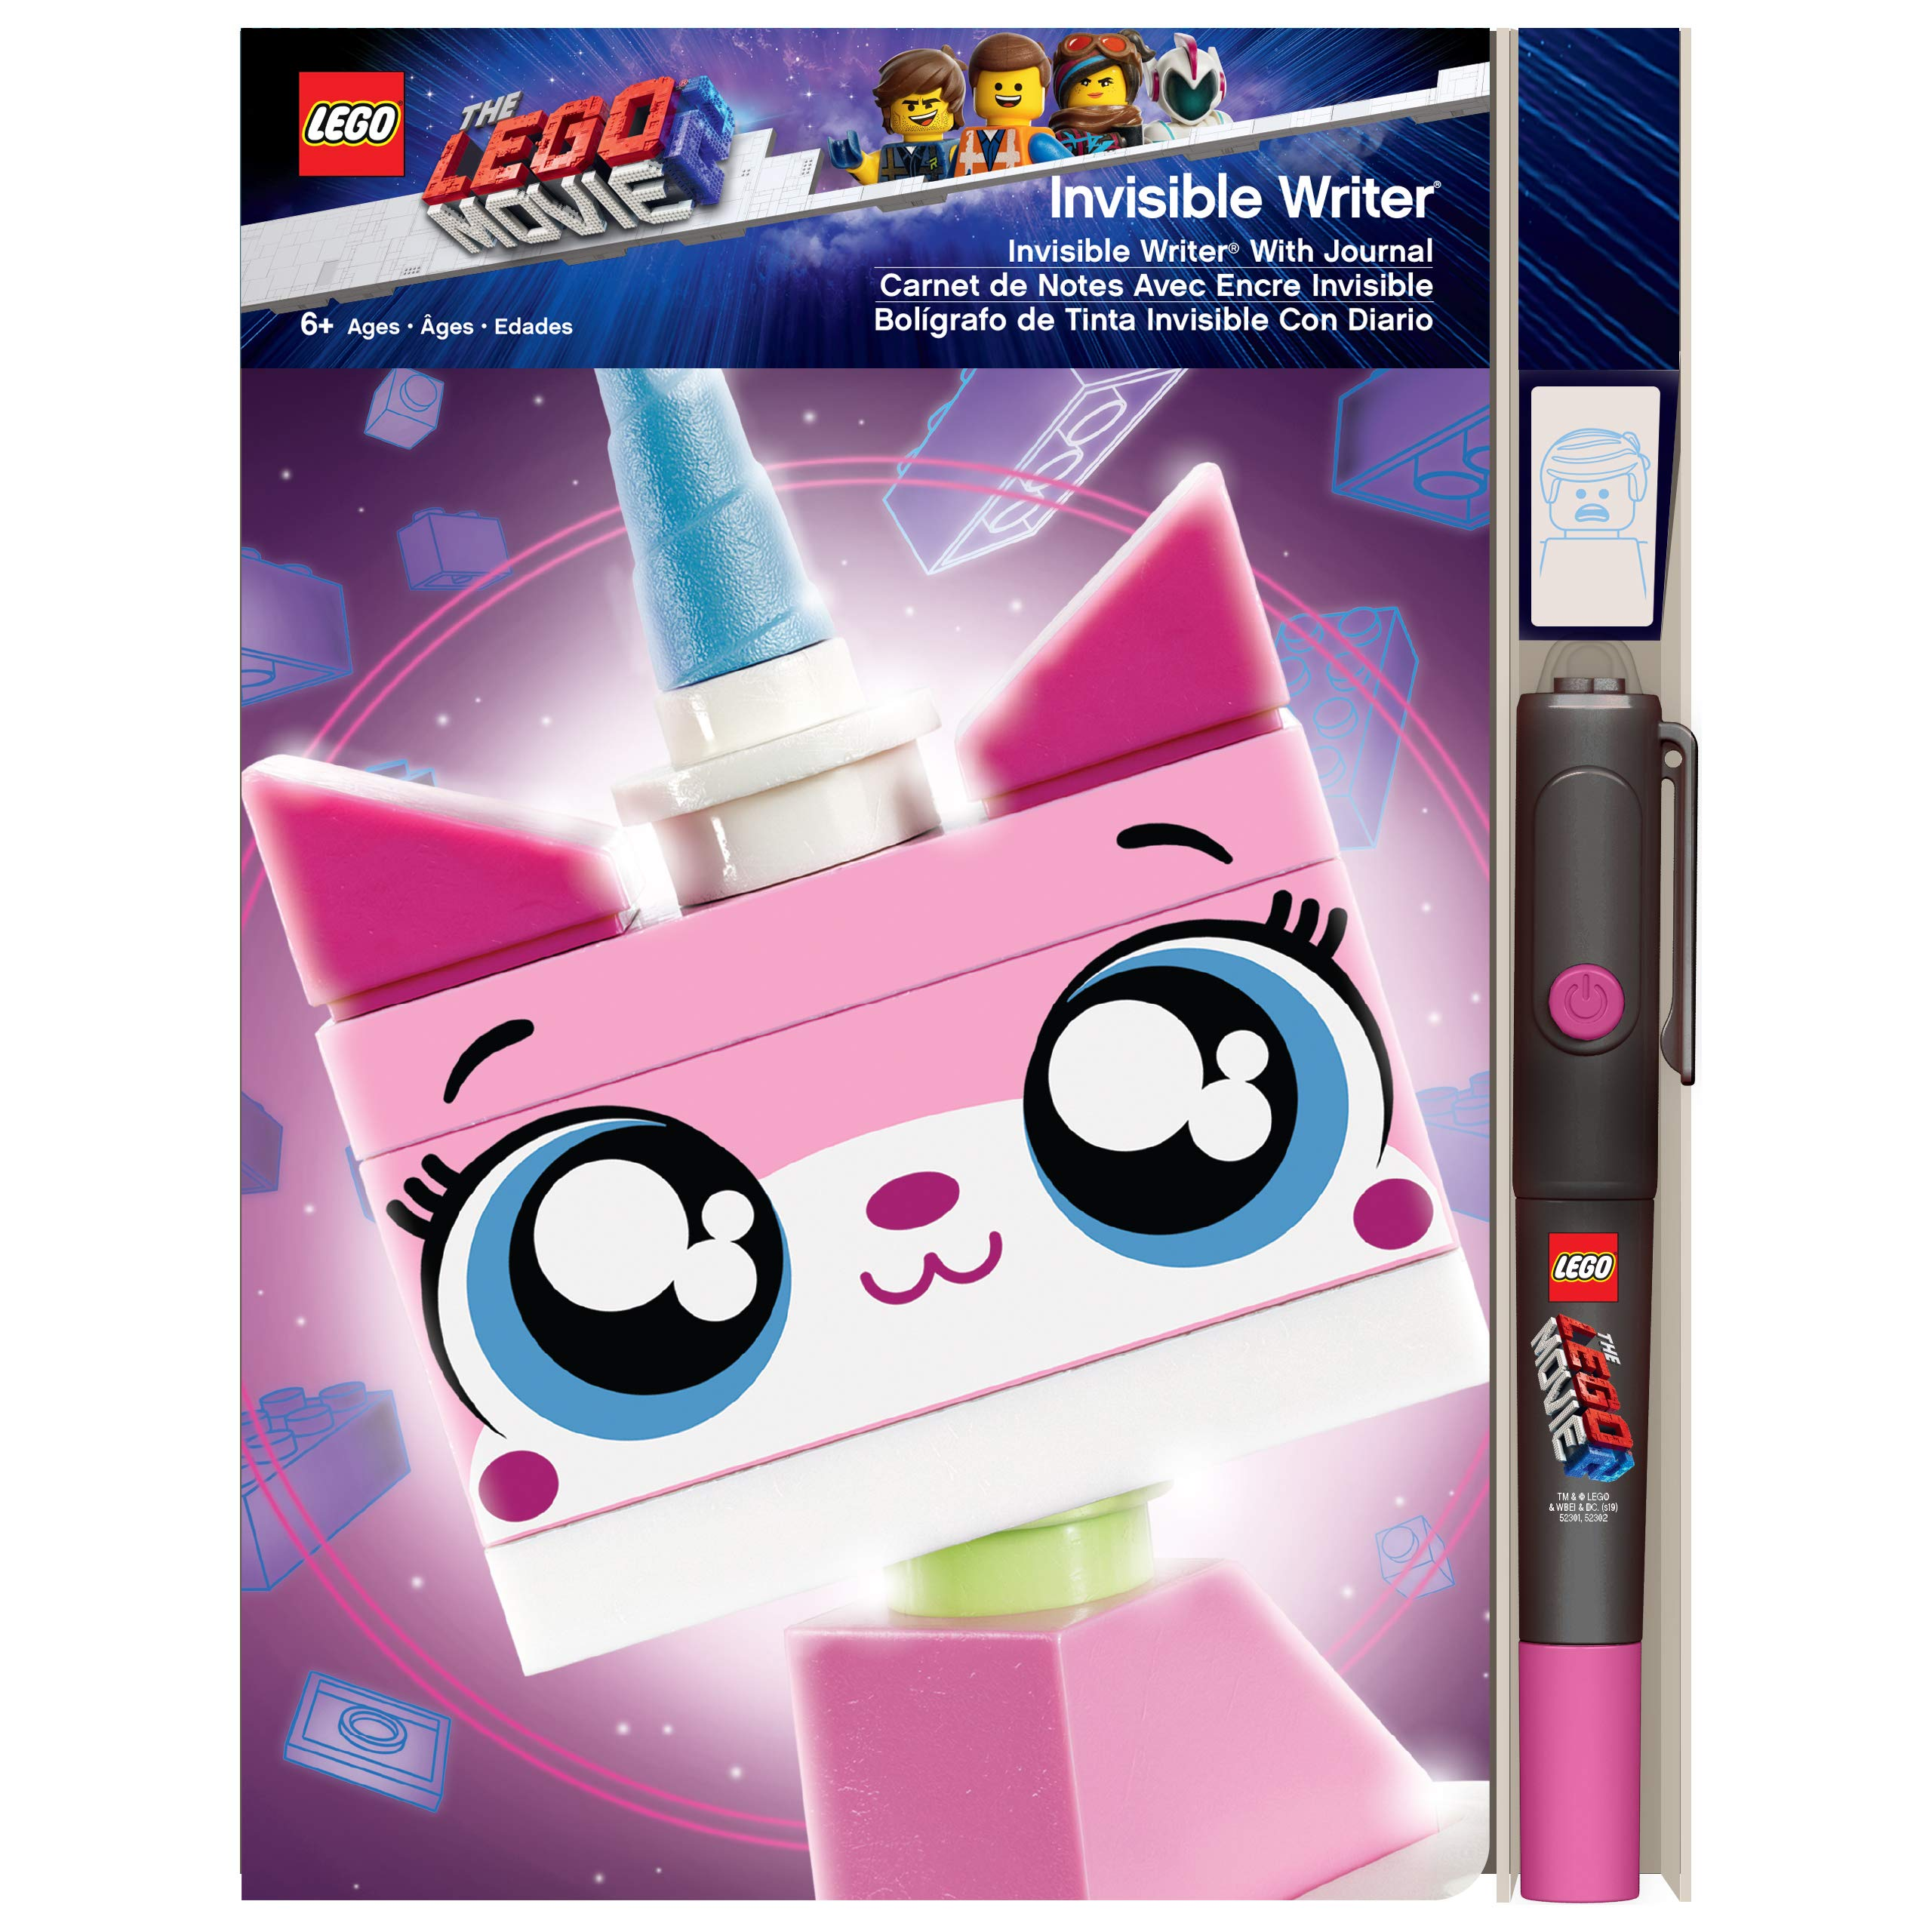 LEGO The Movie 2 Unikitty Invisible Writer with Journal by LEGO (Image #2)